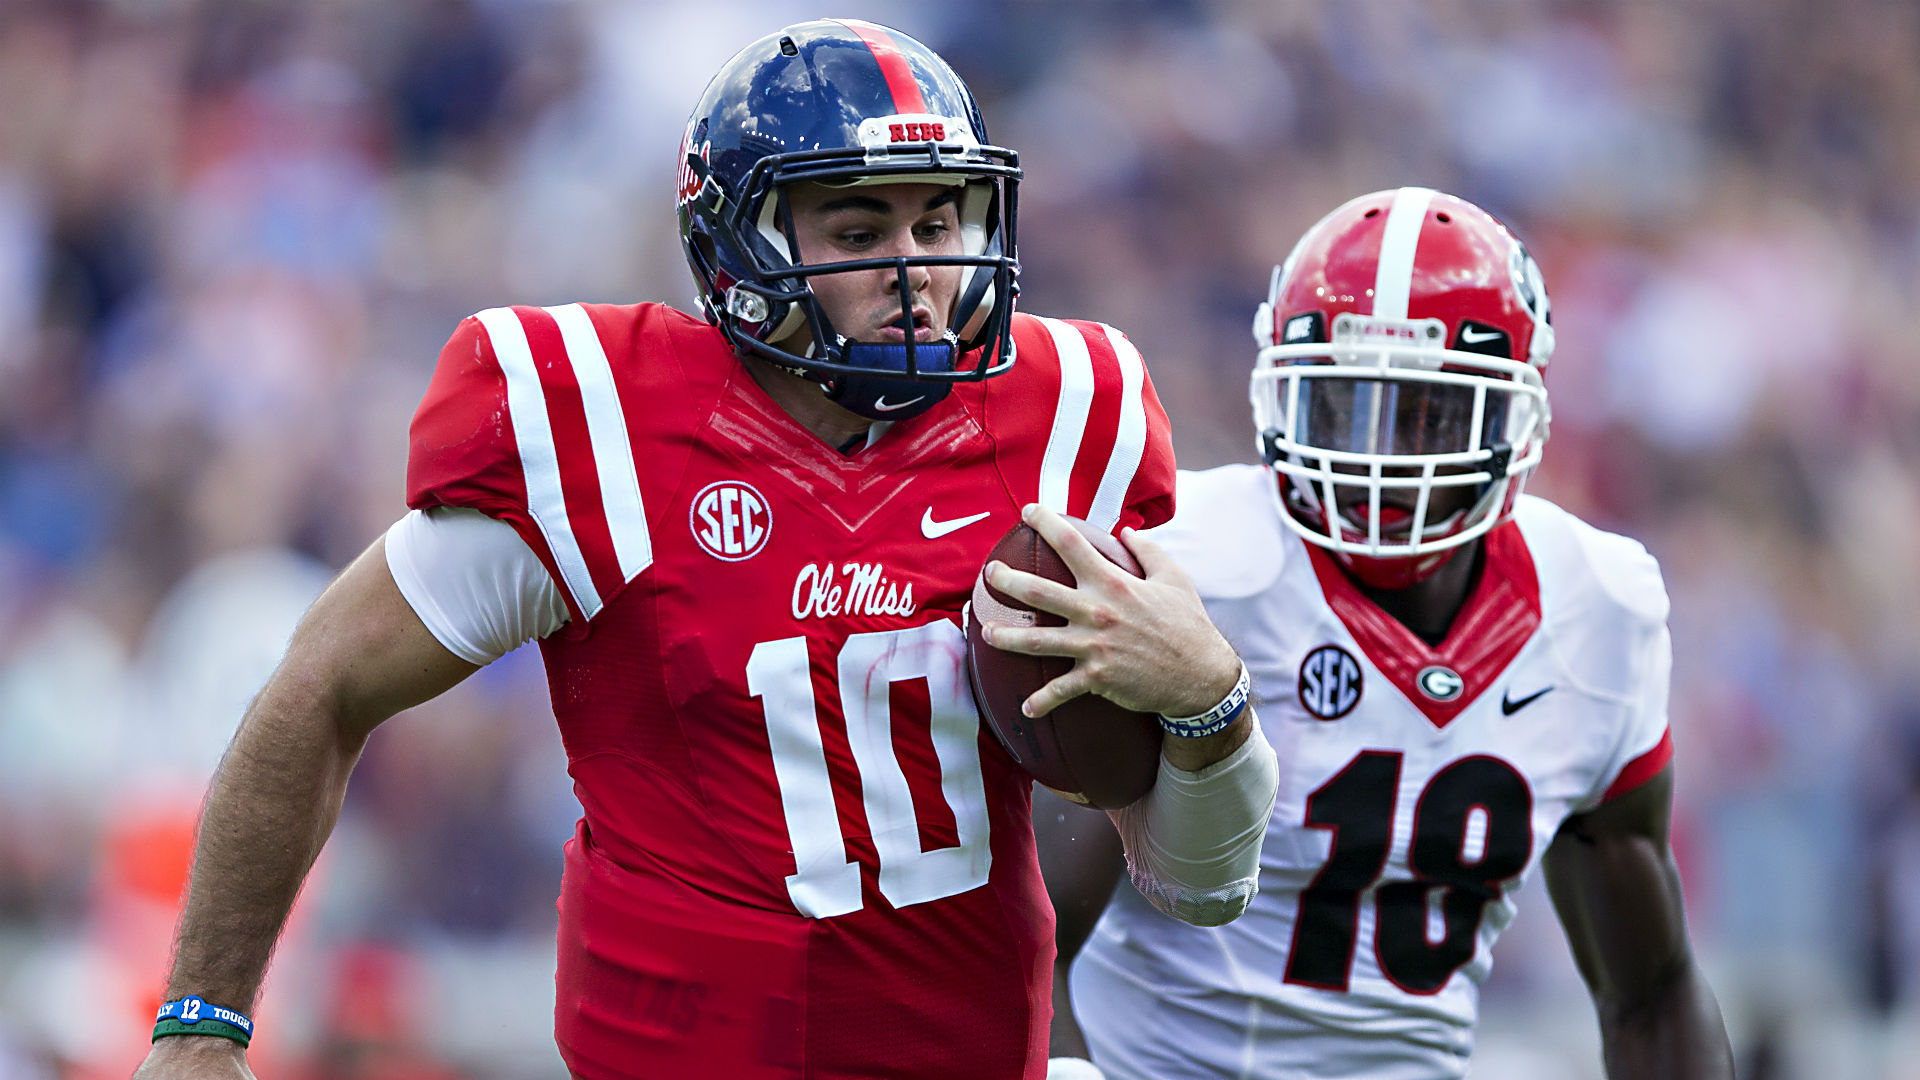 Ole-miss-chad-kelly-getty-ftrjpg_1my91w4epqetp1g1vy5ed6iiz7